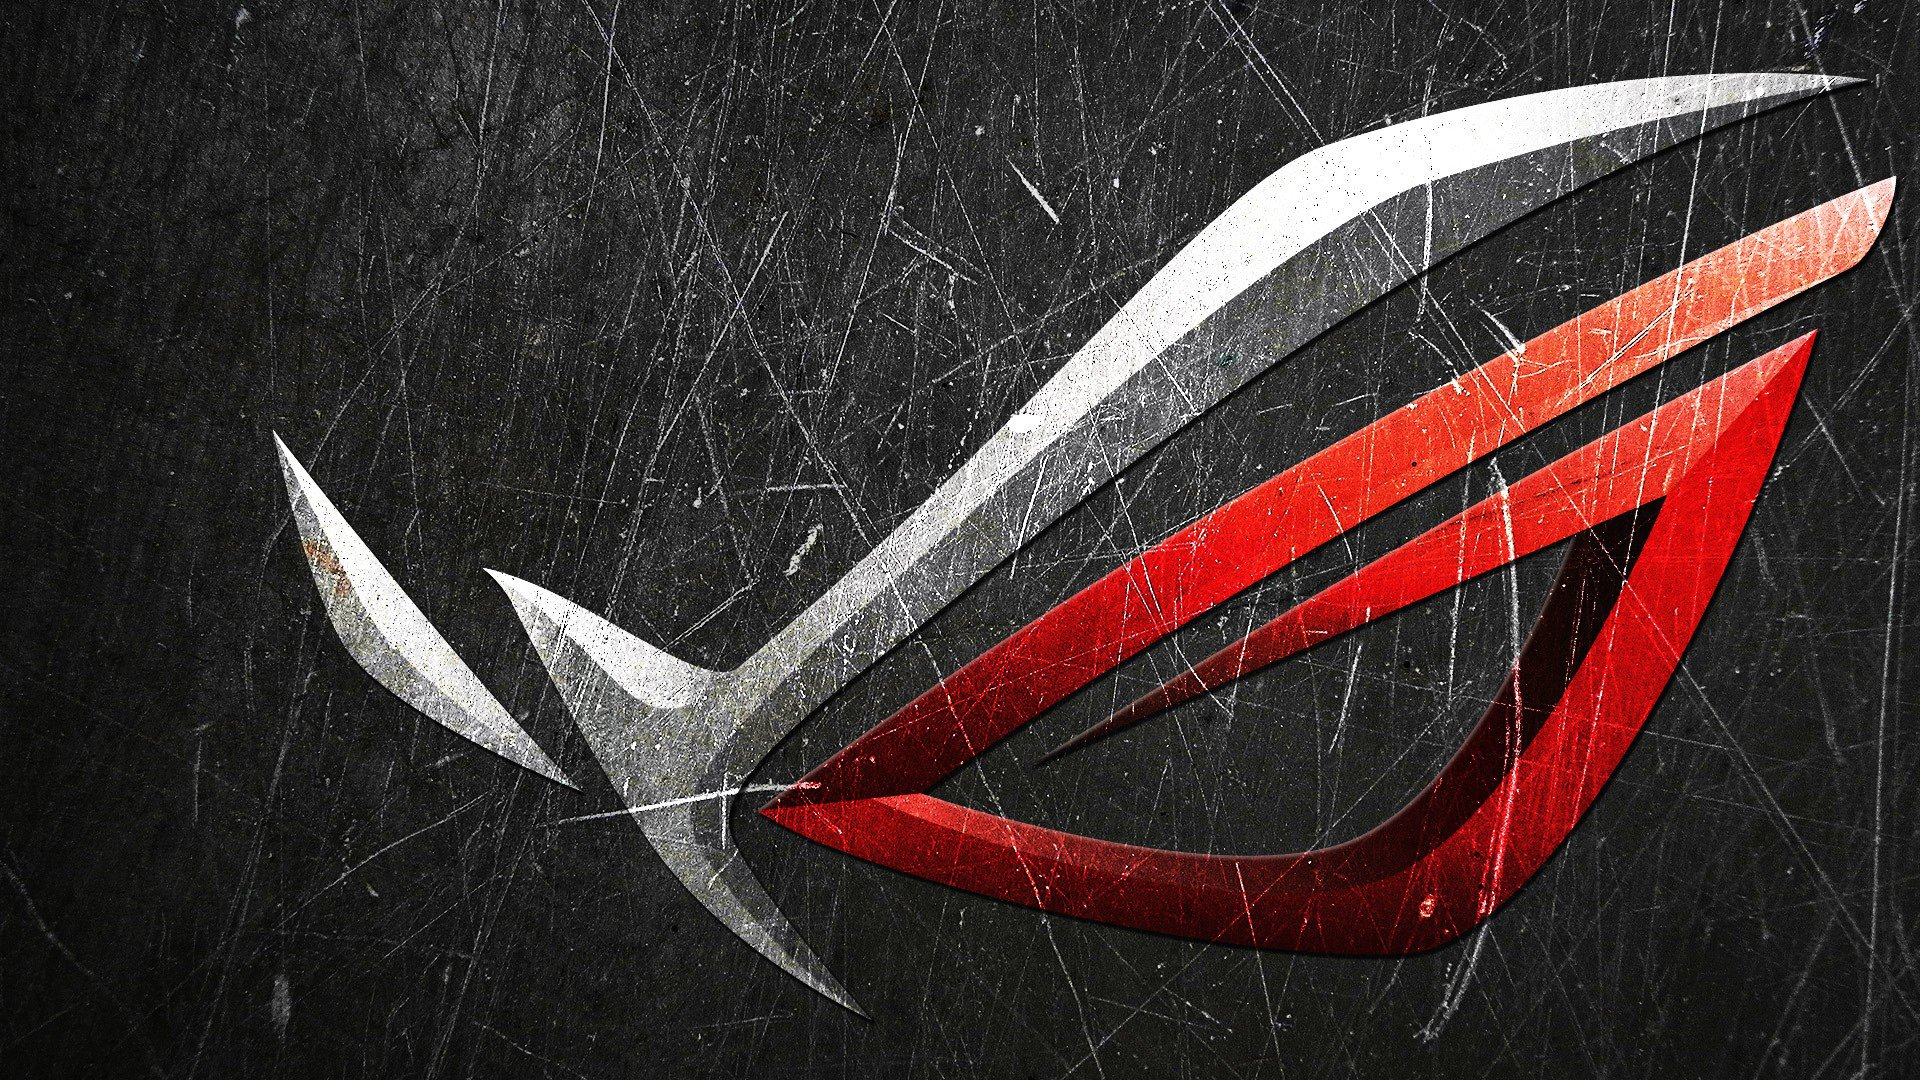 Asus hd wallpapers pictures images asus hd full hd wallpaper voltagebd Images